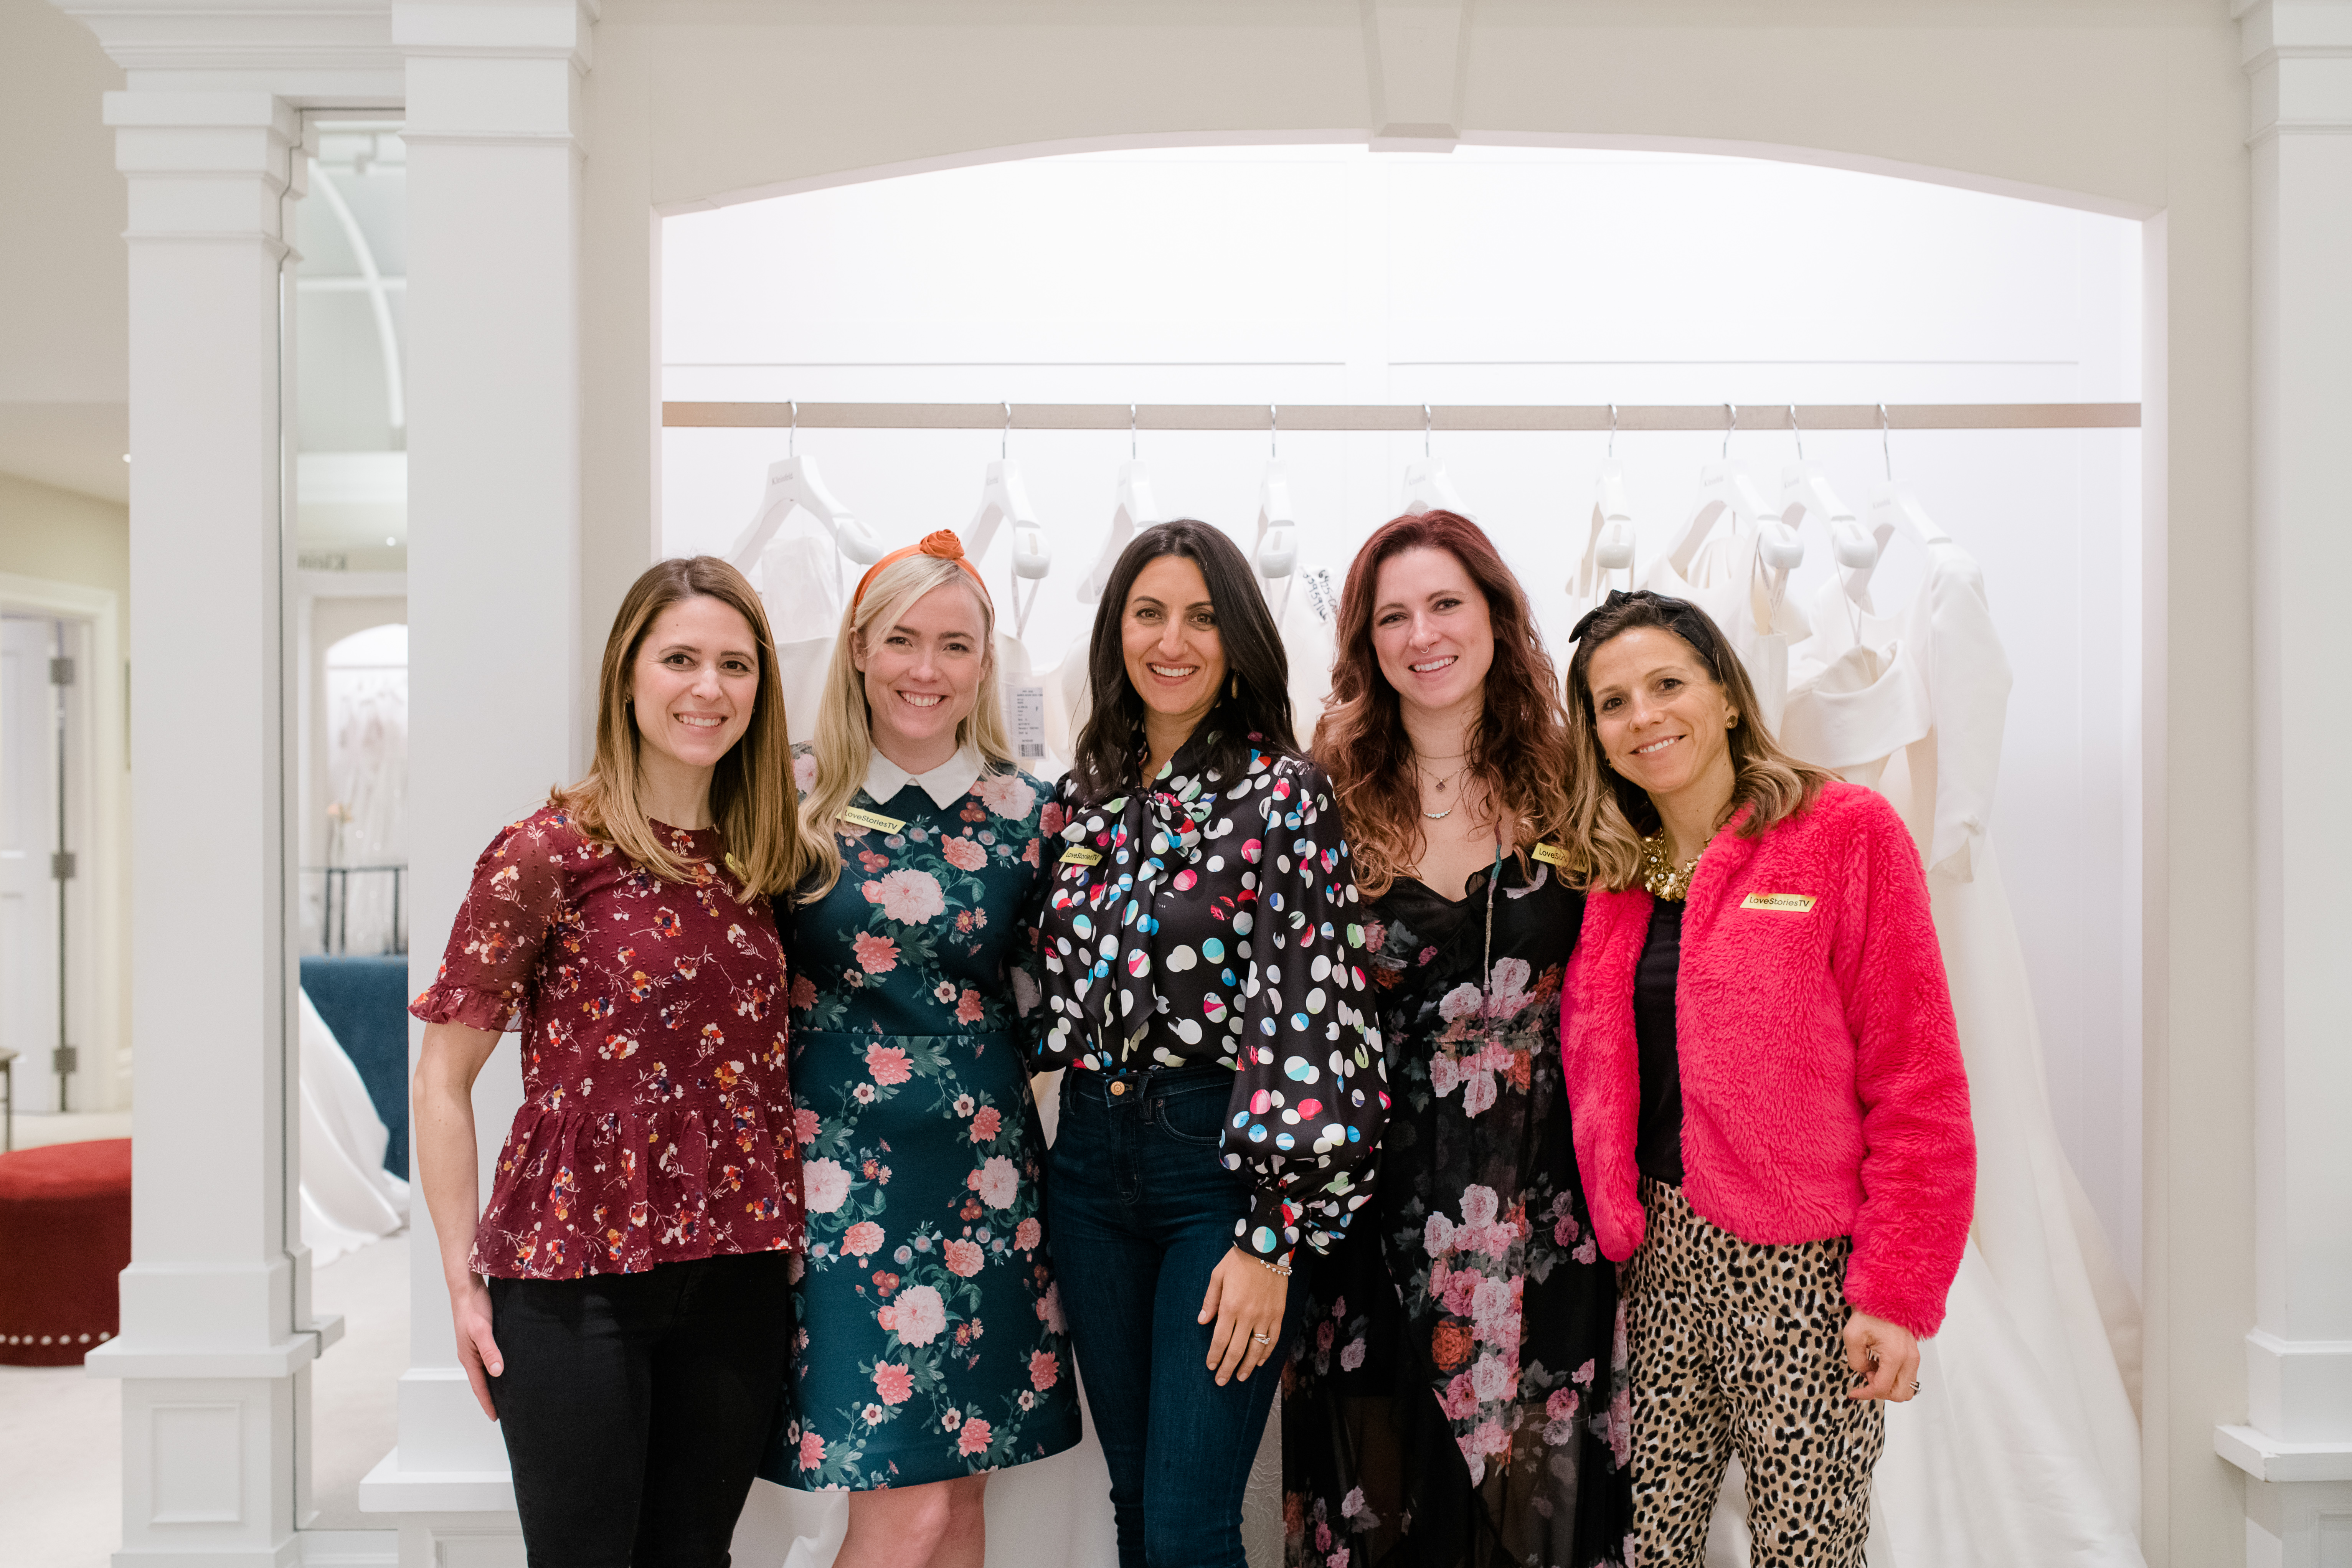 Five professional woman at Kleinfeld Bridal wedding event by Love Stories TV